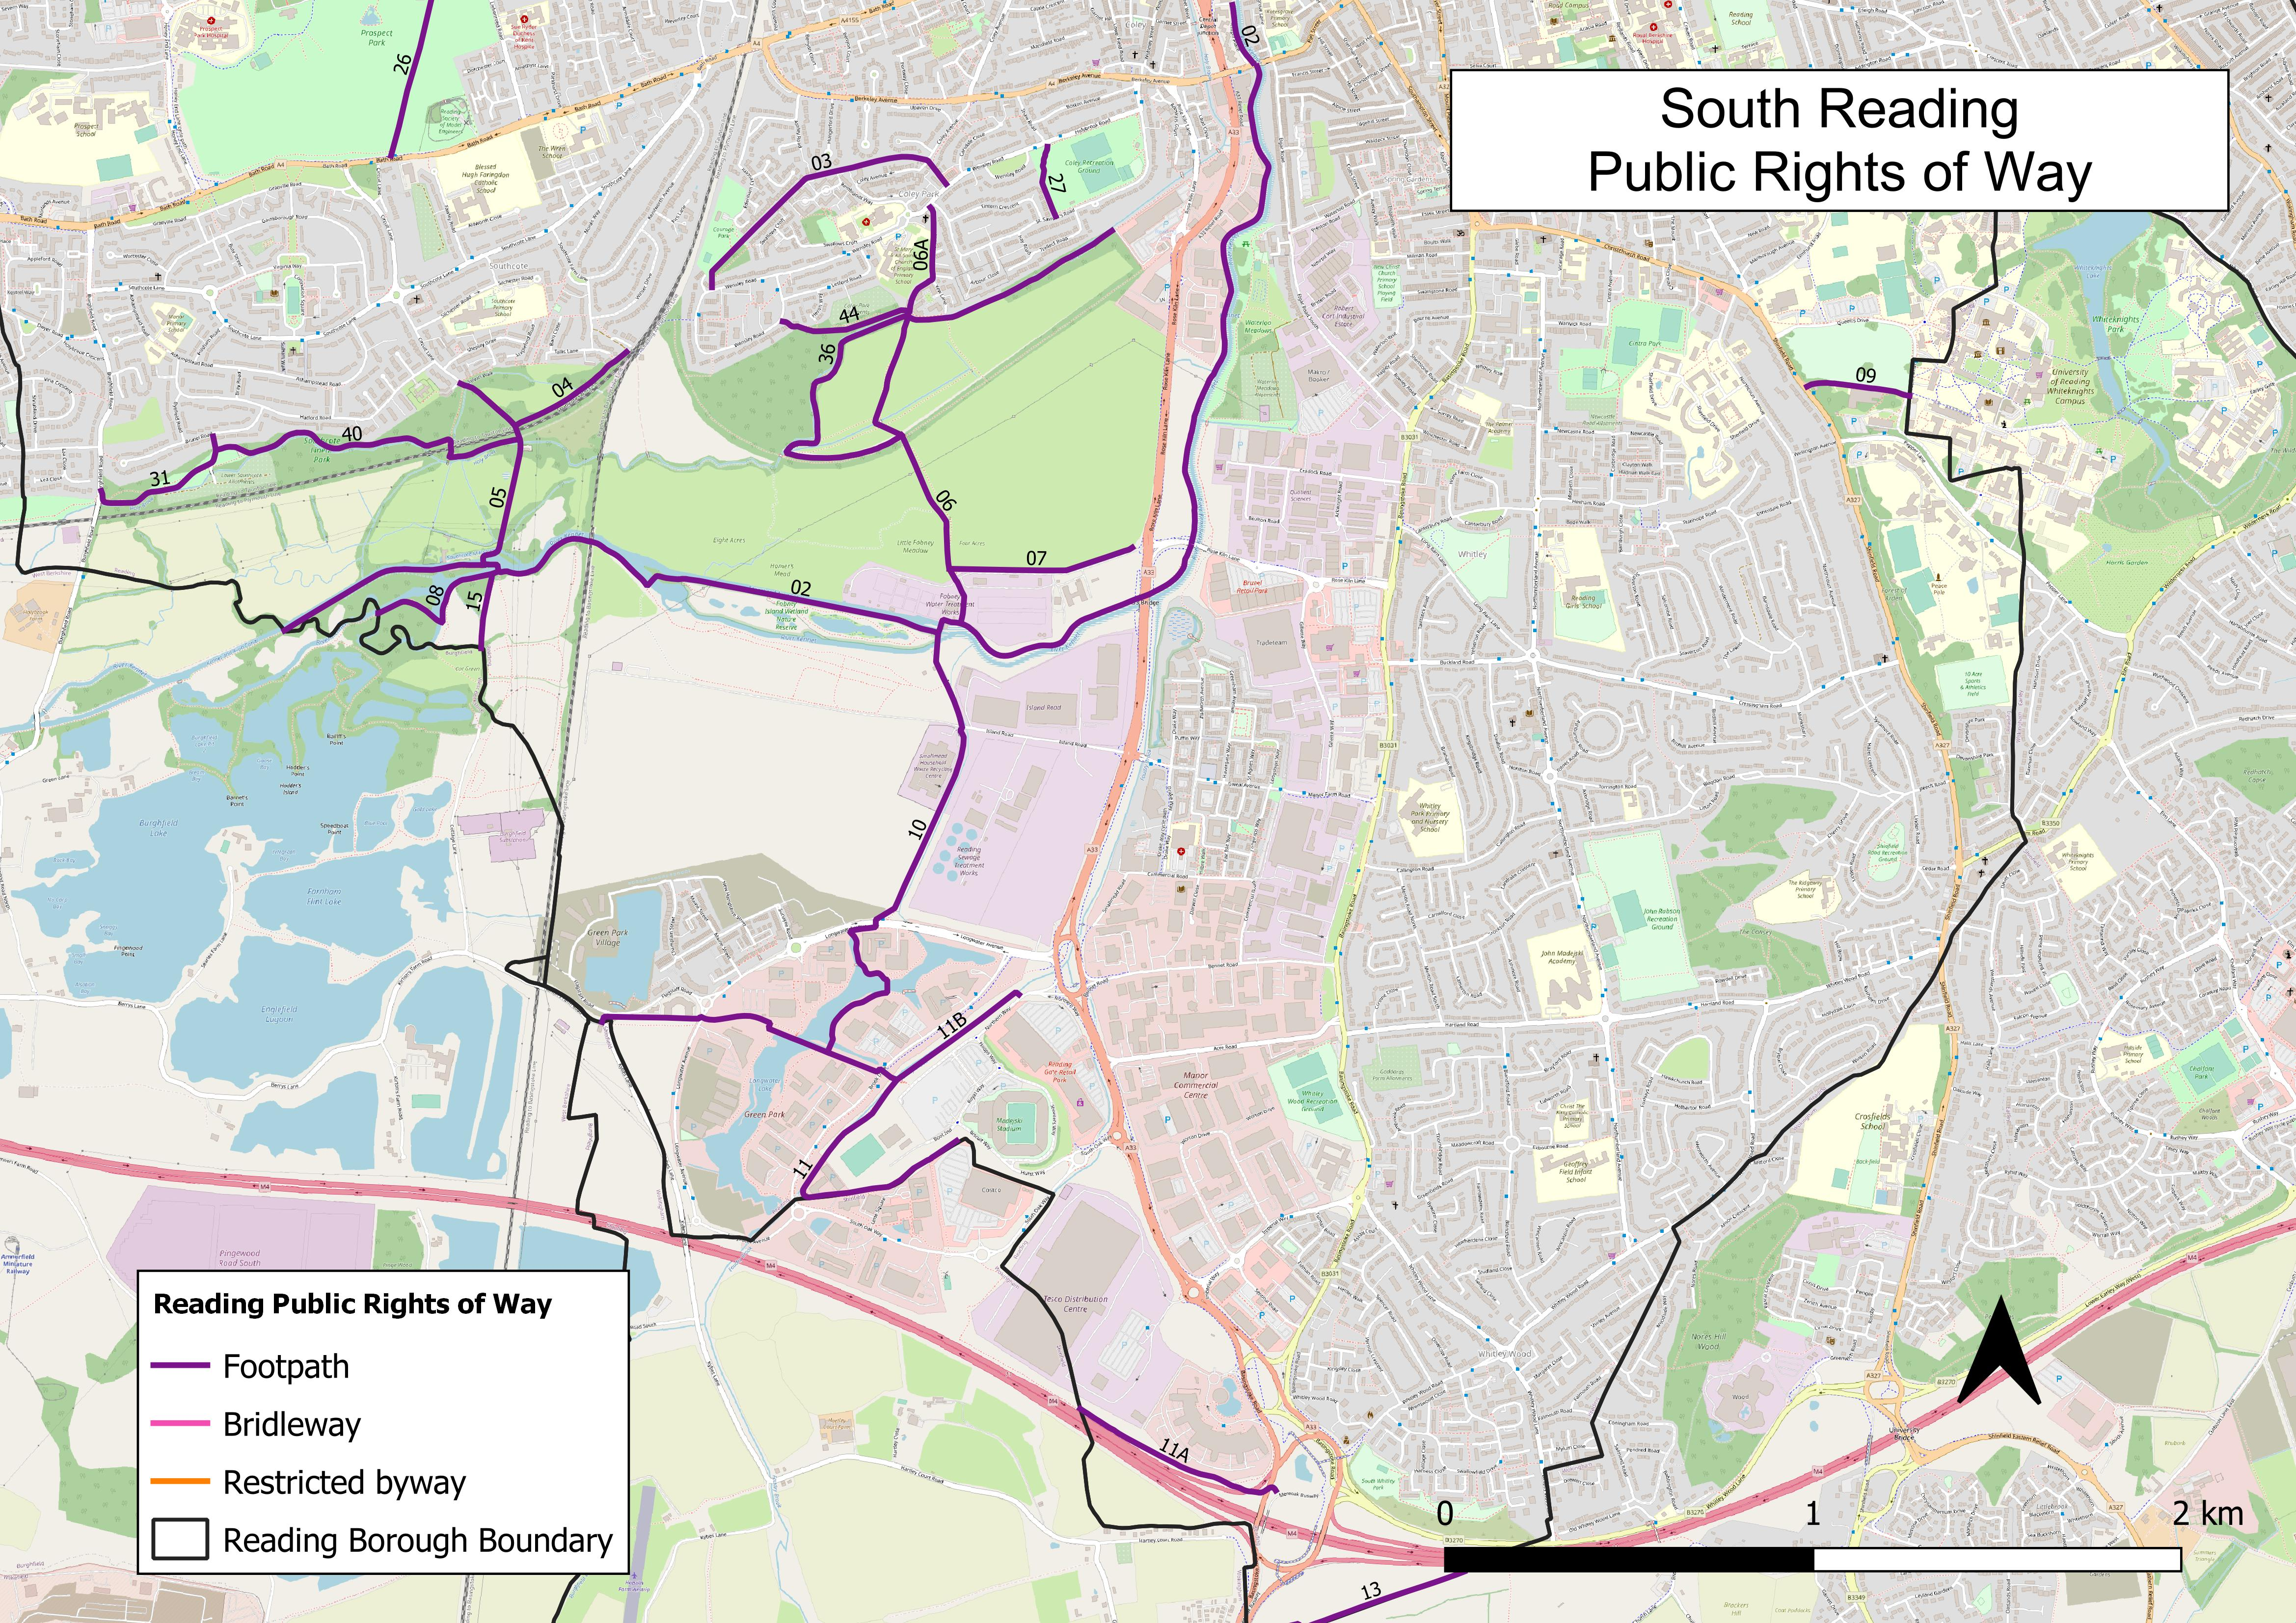 Map of public rights of way in South Reading